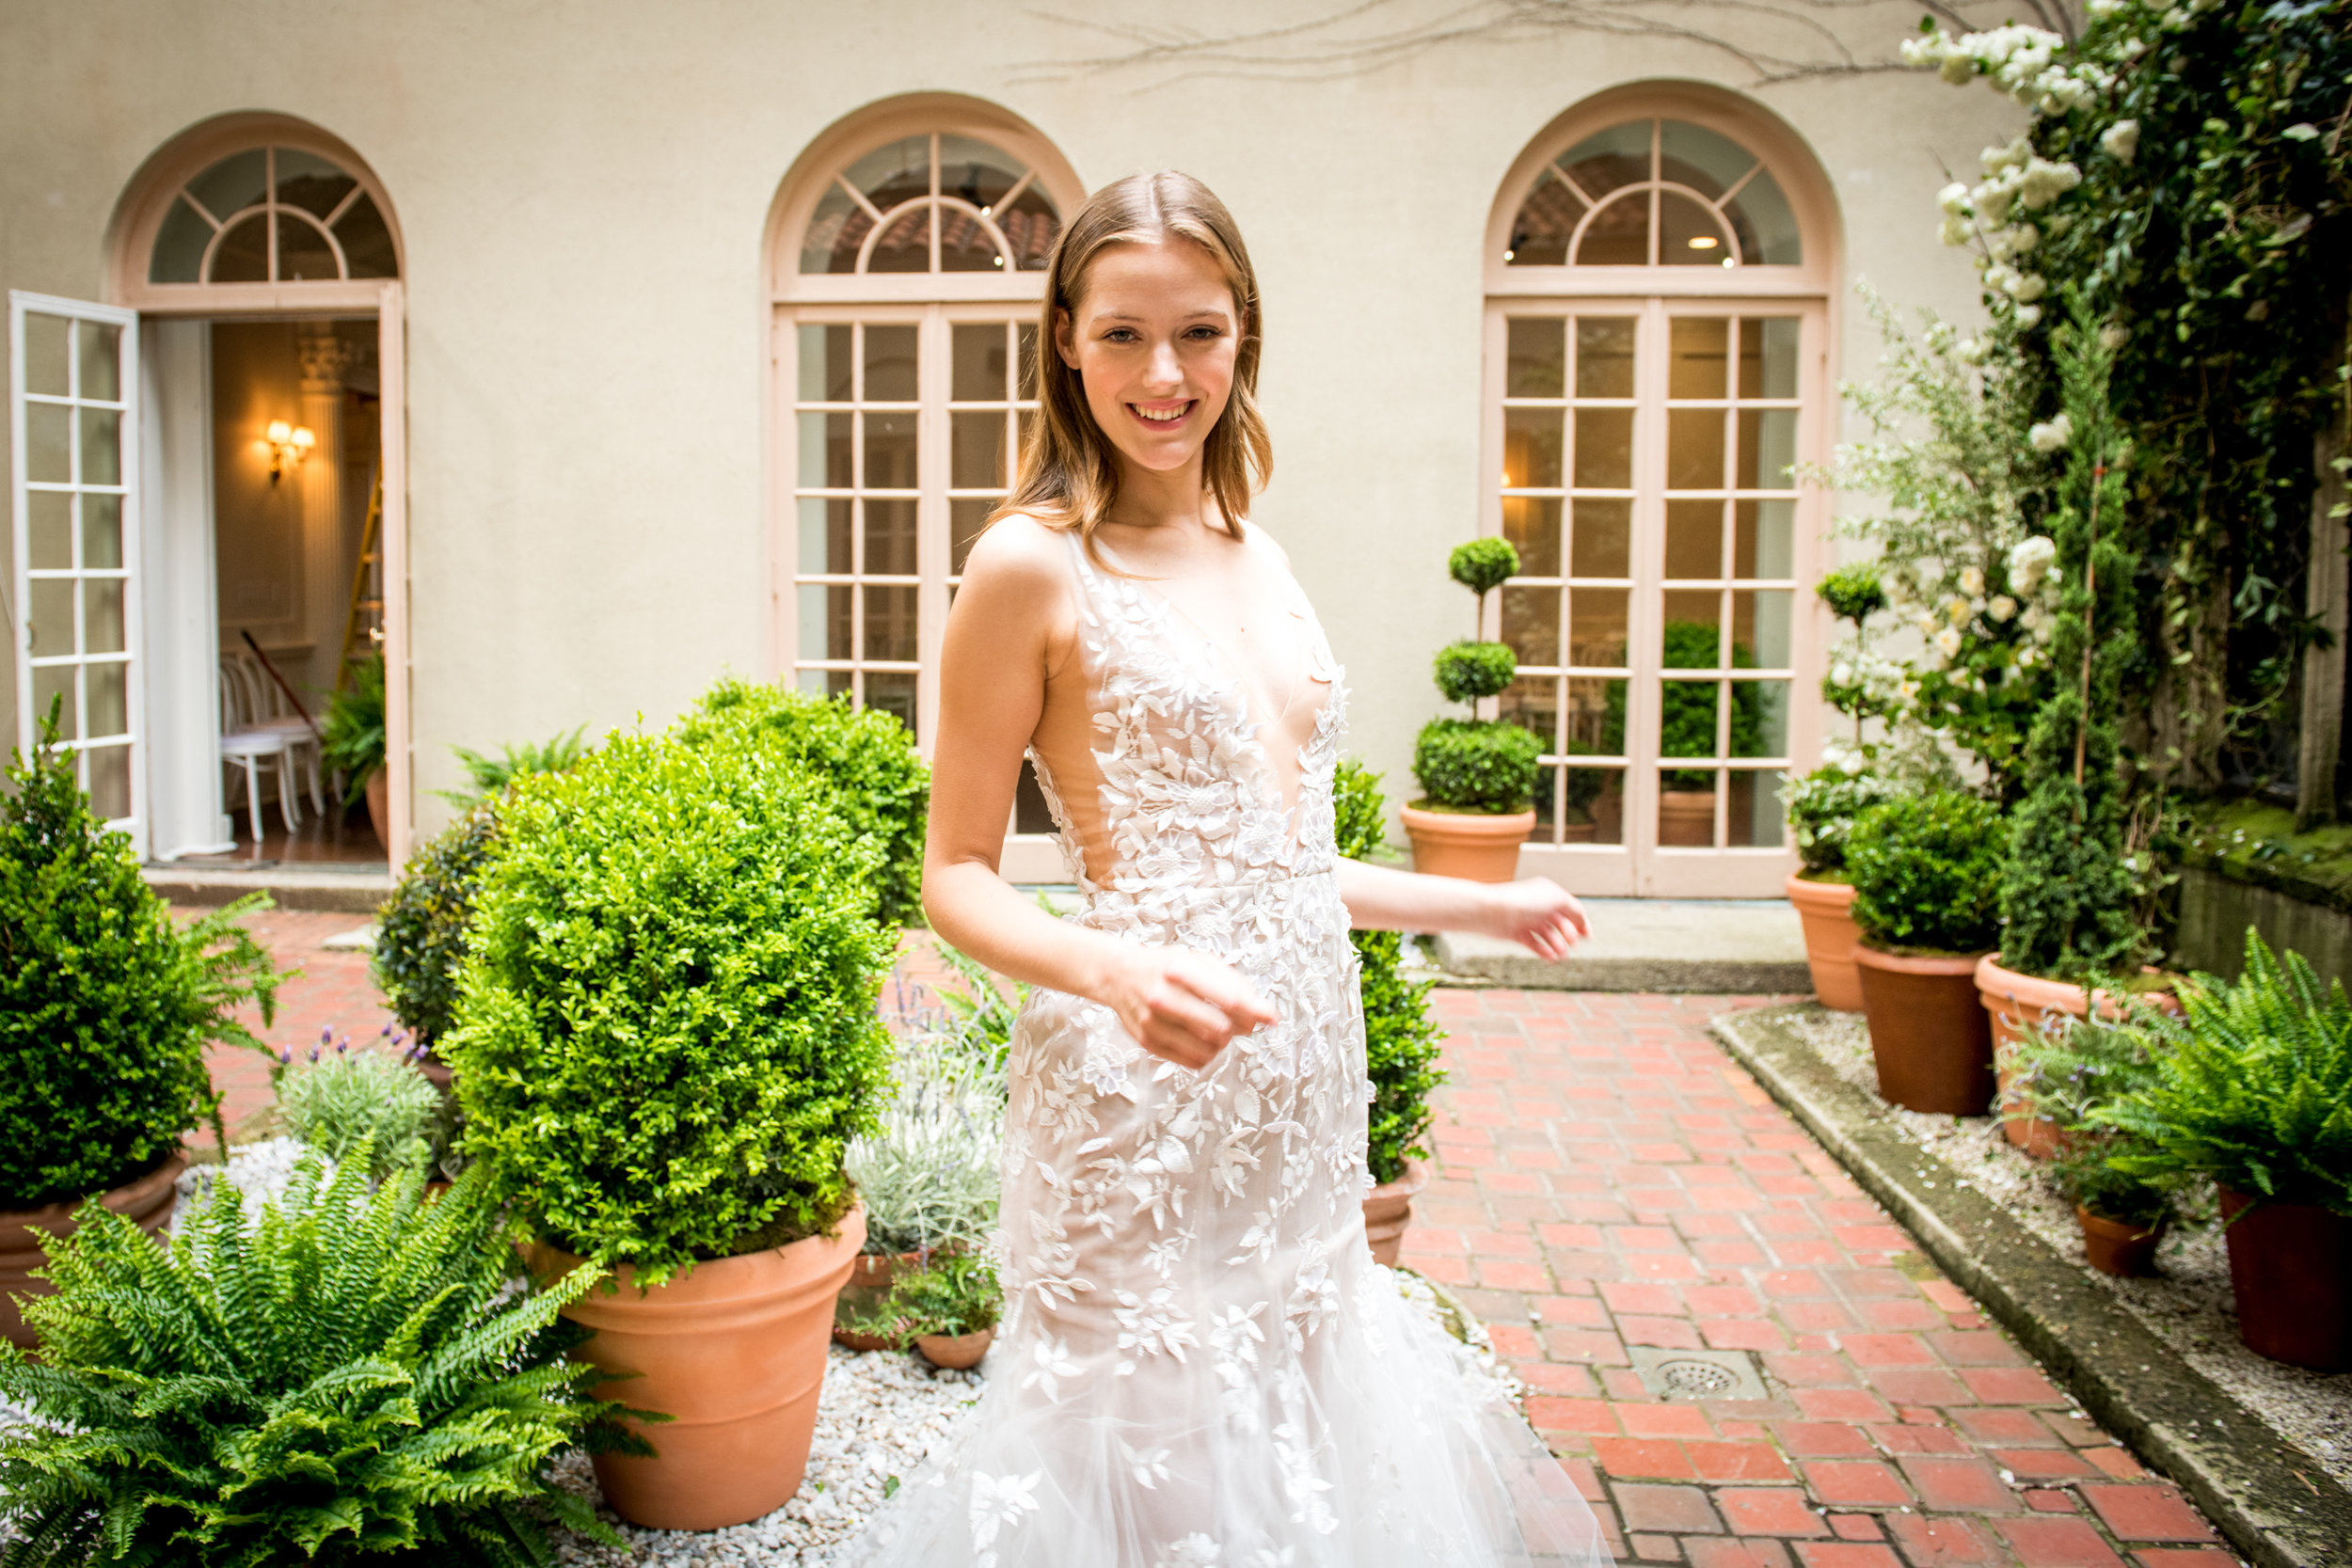 greenberg_ODLR_Bridal_052218-1556.jpg